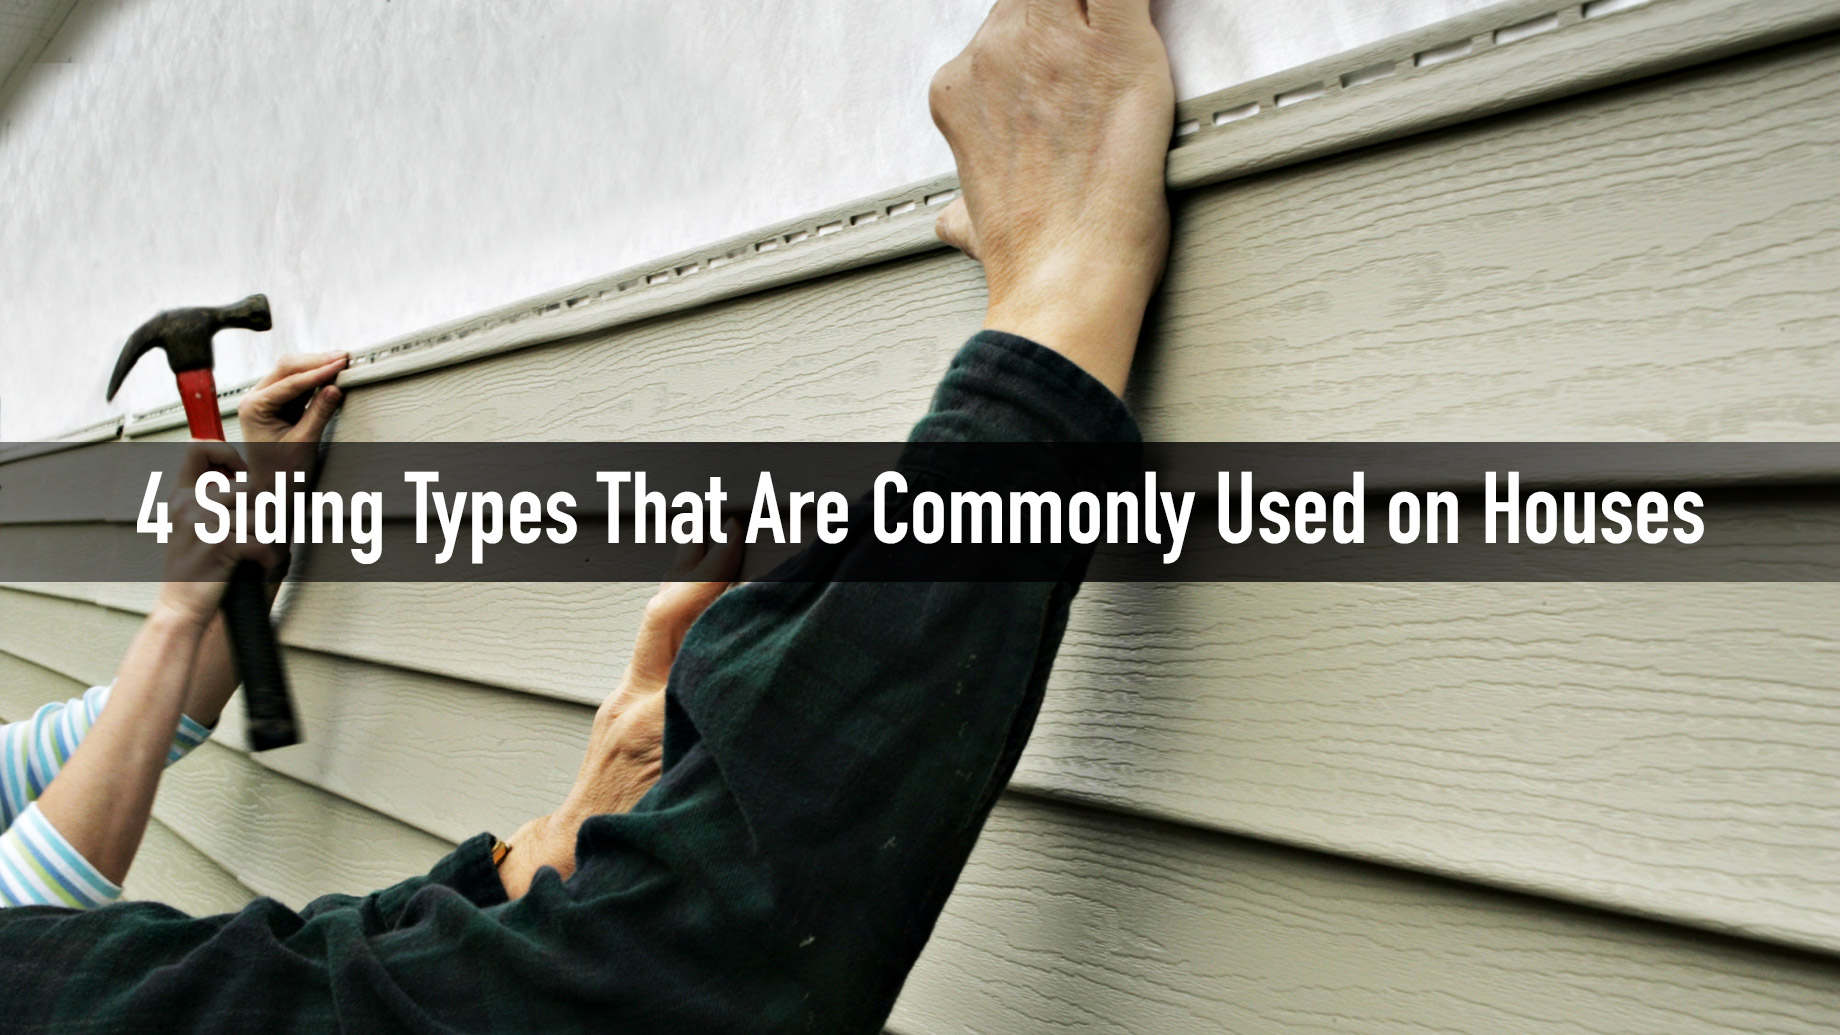 4 Siding Types That Are Commonly Used on Houses